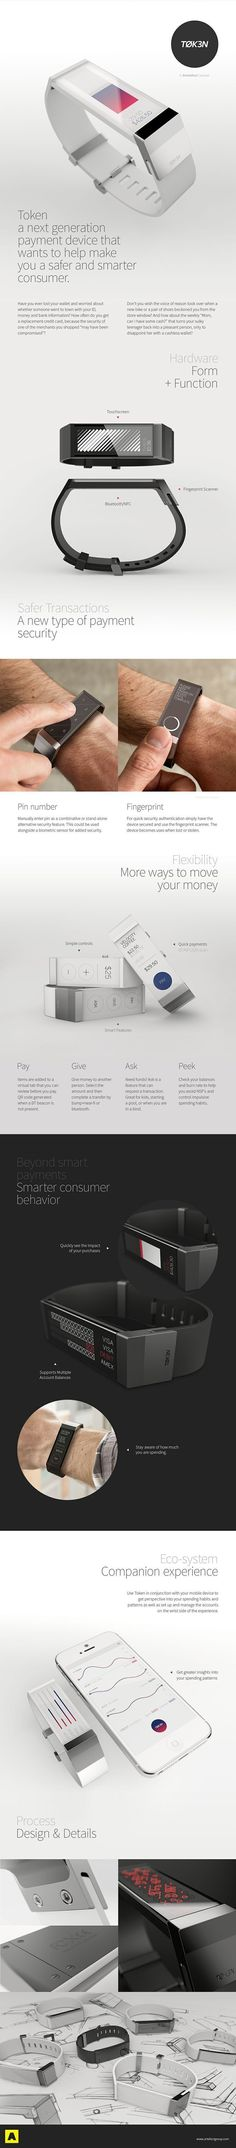 Token: A safe and secure next-gen payment wristband concept you can connect to your bank accounts. Time to lose those credit cards (on purpose this time).